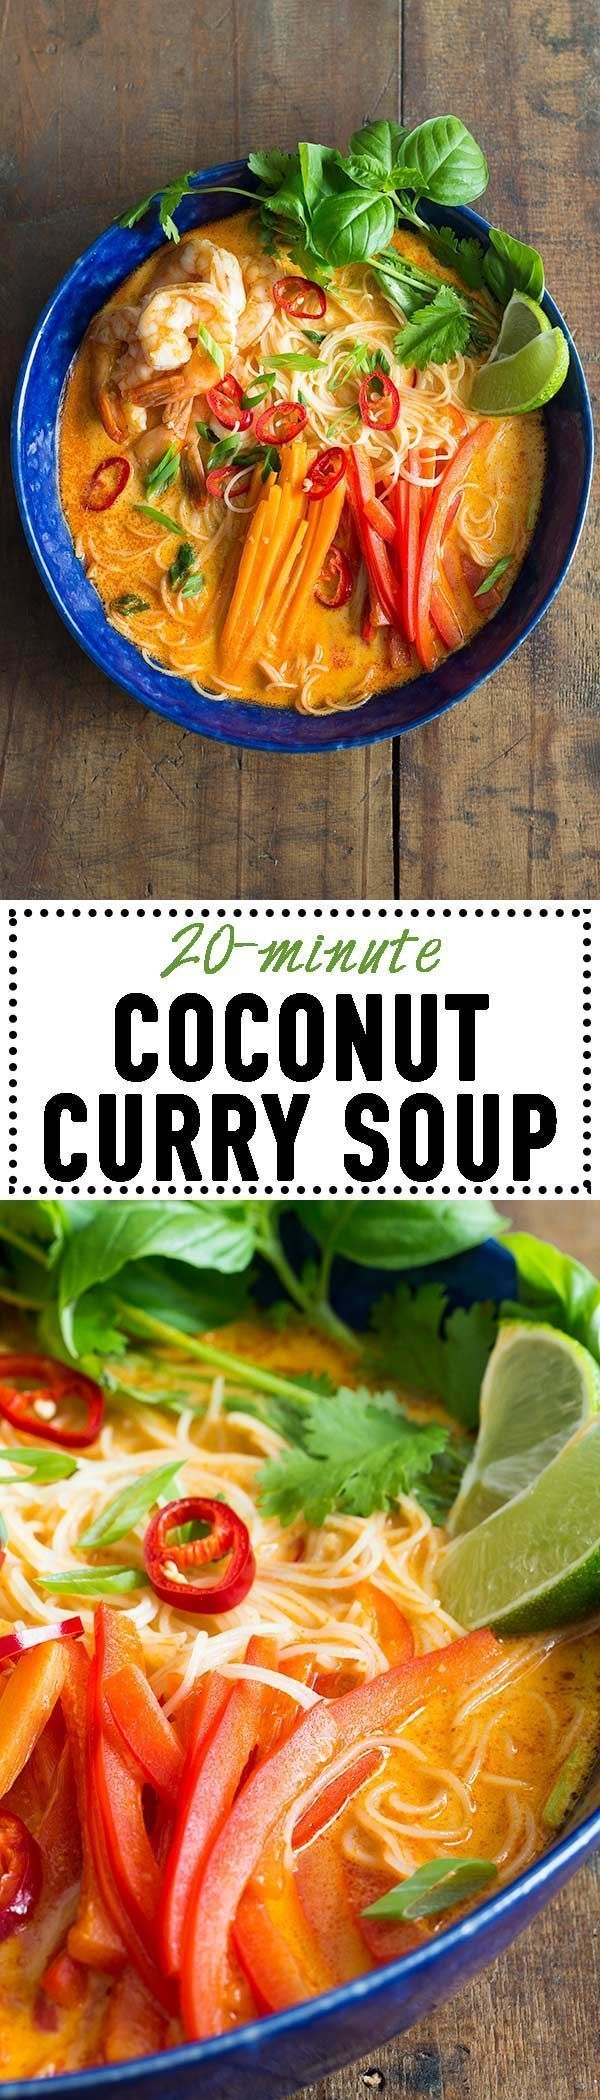 An incredibly flavourful Coconut Curry Soup prepared in 20 minutes! Rice Noodles, shrimps and veggies in a delicious broth with thai curry and coconut milk! via @greenhealthycoo incredibly flavourful Coconut Curry Soup prepared in 20 minutes! Rice Noodles, shrimps and veggies in a delicious broth with thai curry and coconut milk! via @greenhealthycoo